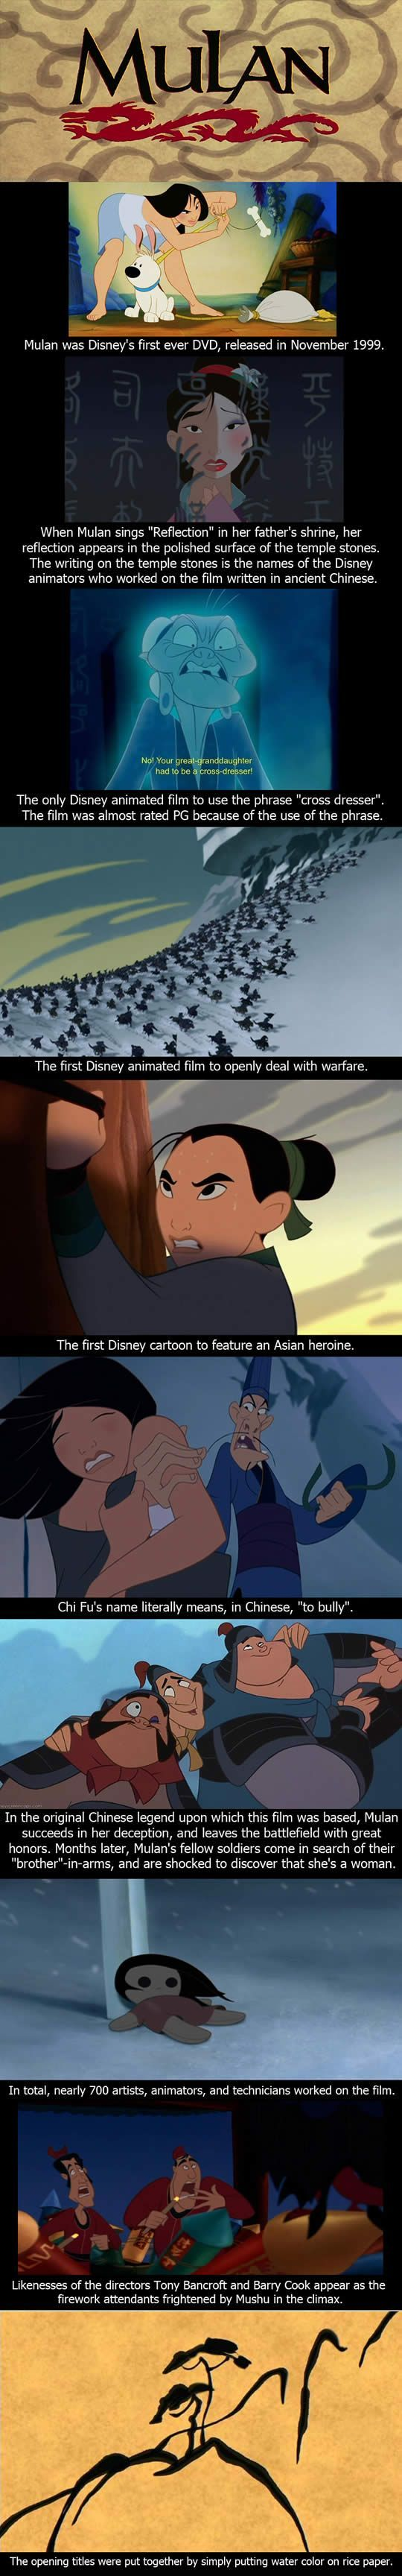 Reasons why I love Mulan!